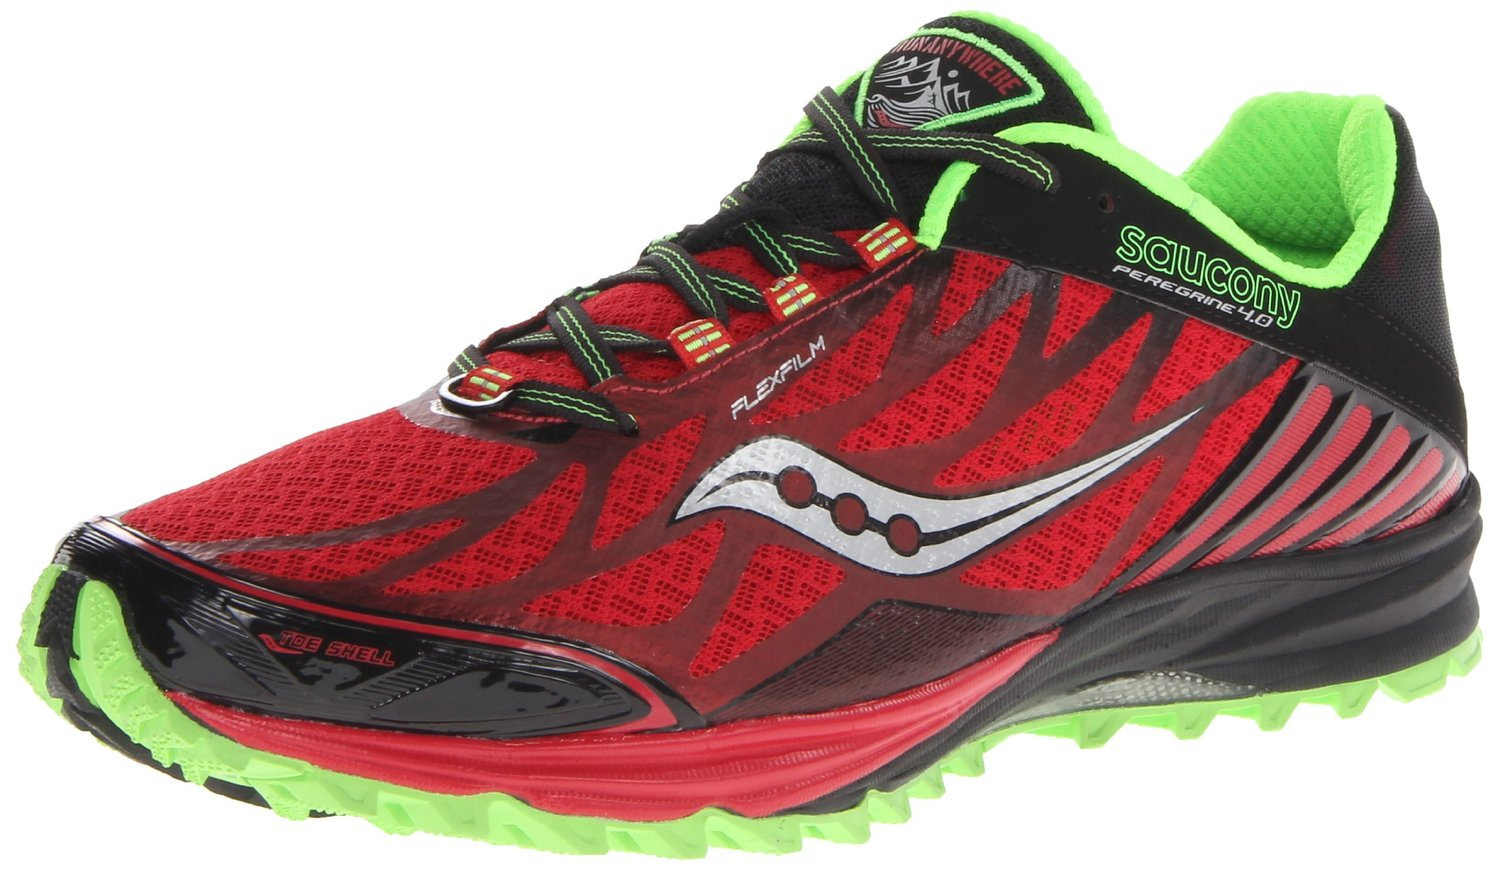 Is Saucony Best Shoes For Wet